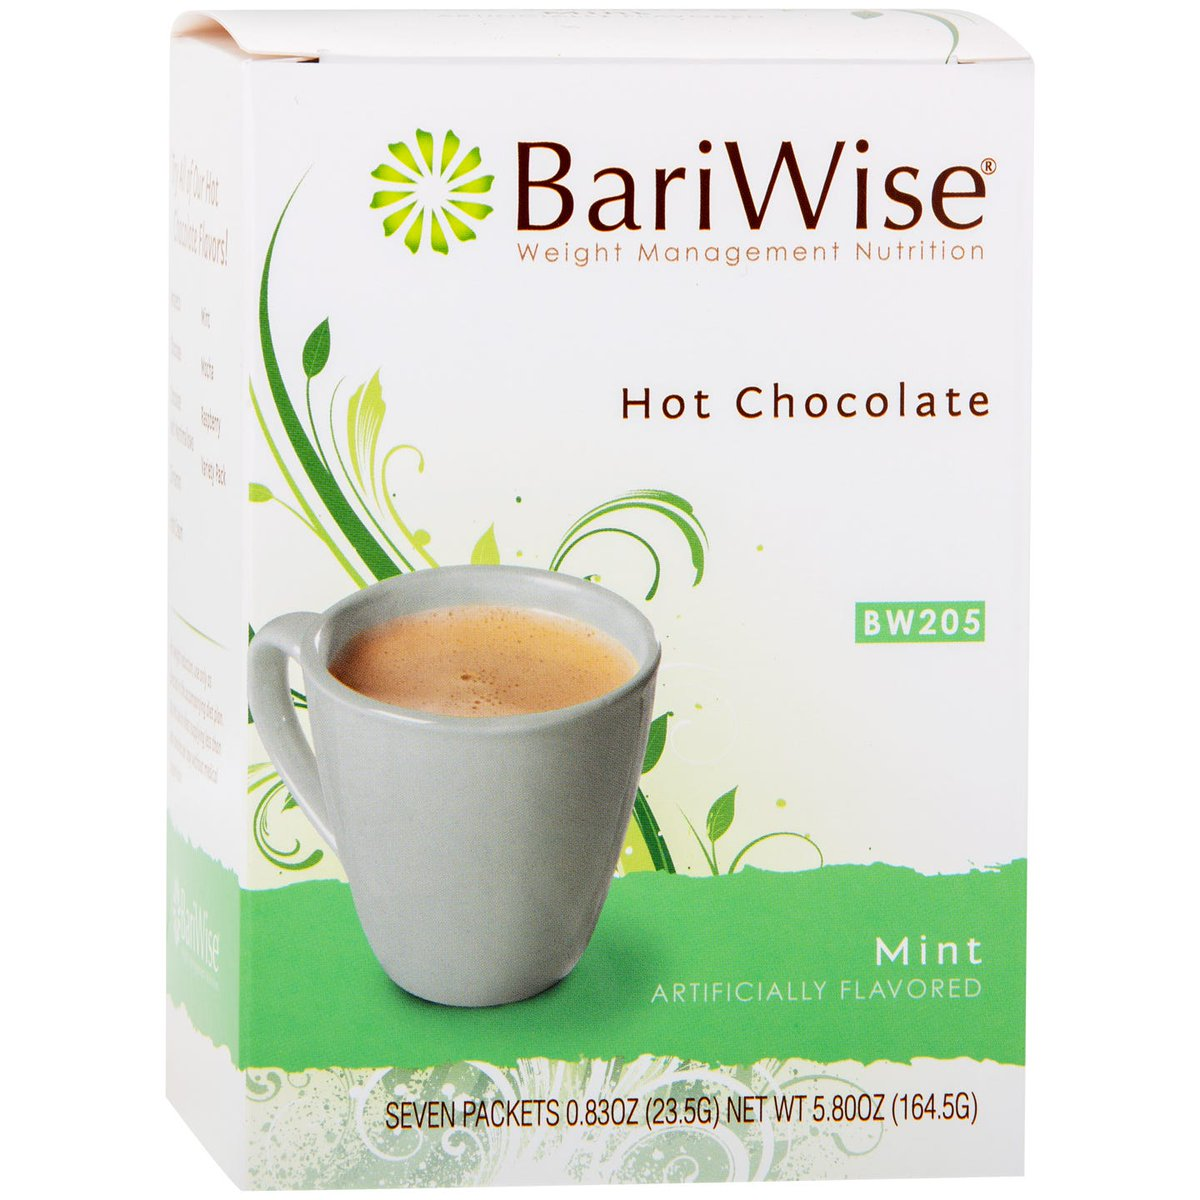 Protein Diet Hot Chocolate Mint (7 ct) - BariWise from https://skinny-me.co.uk/diet/sale.php?id=598663943… #Dietingpic.twitter.com/mbYtgxYOkl  by MinT